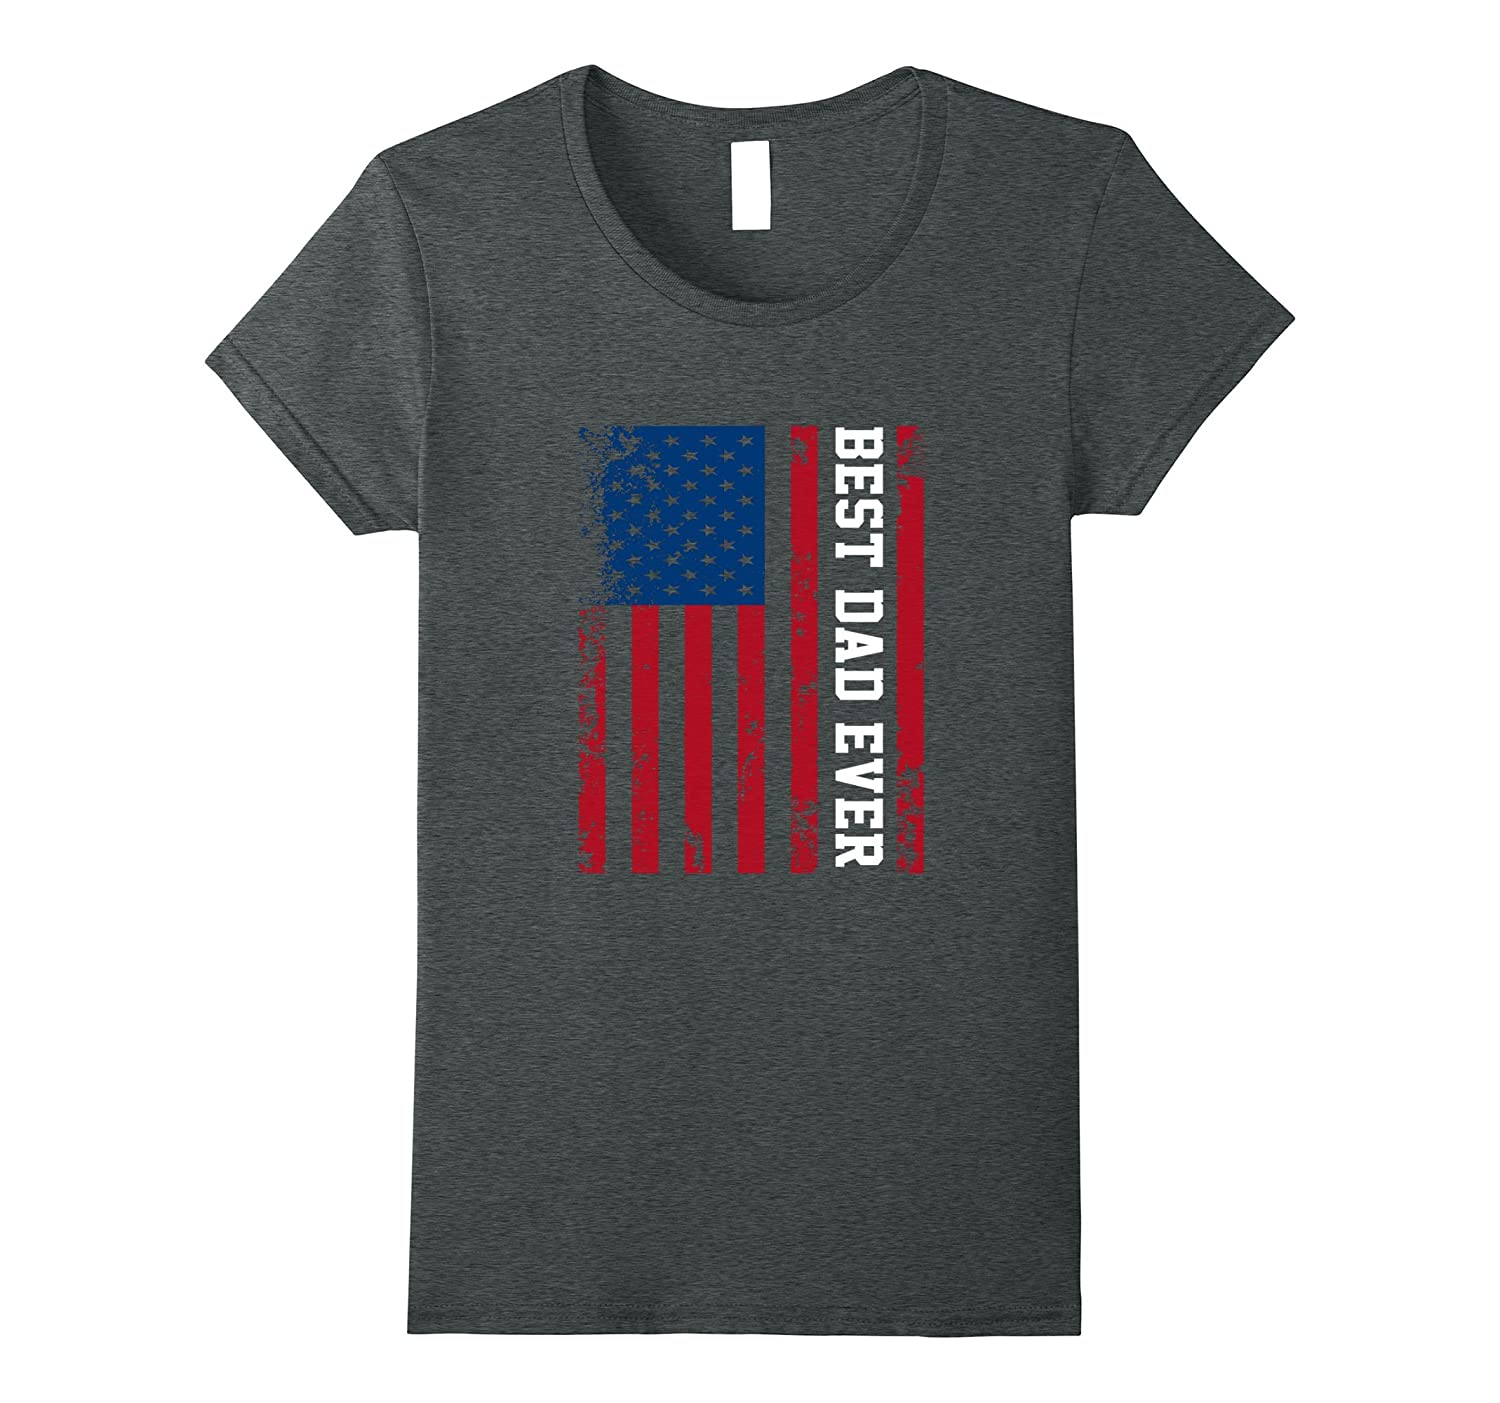 Best Dad Ever American Flag Tshirt For Fathers Day